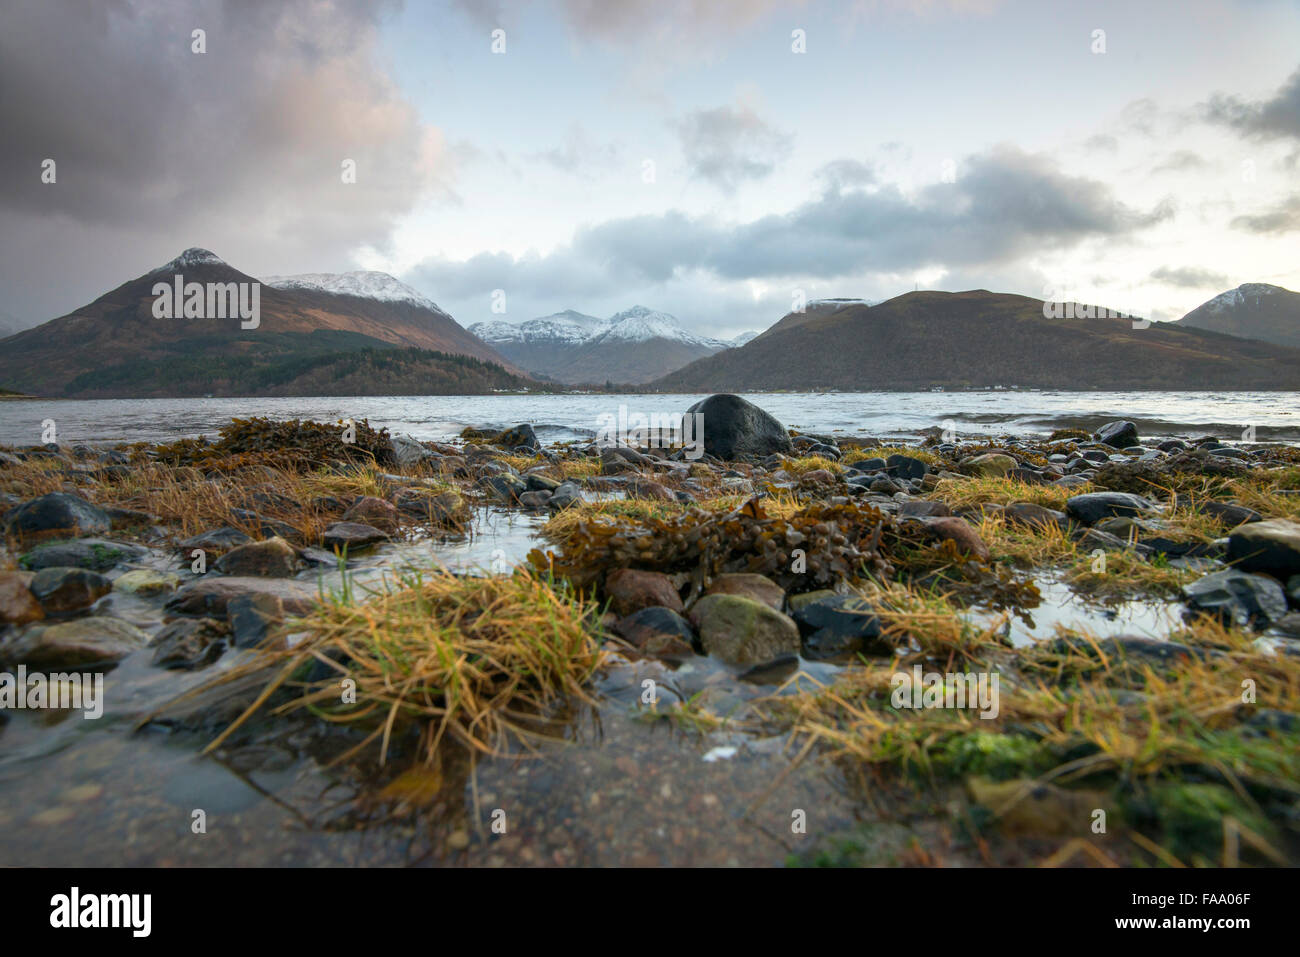 The beach at Loch Leven in North Ballachulish in Scotland, UK - Stock Image